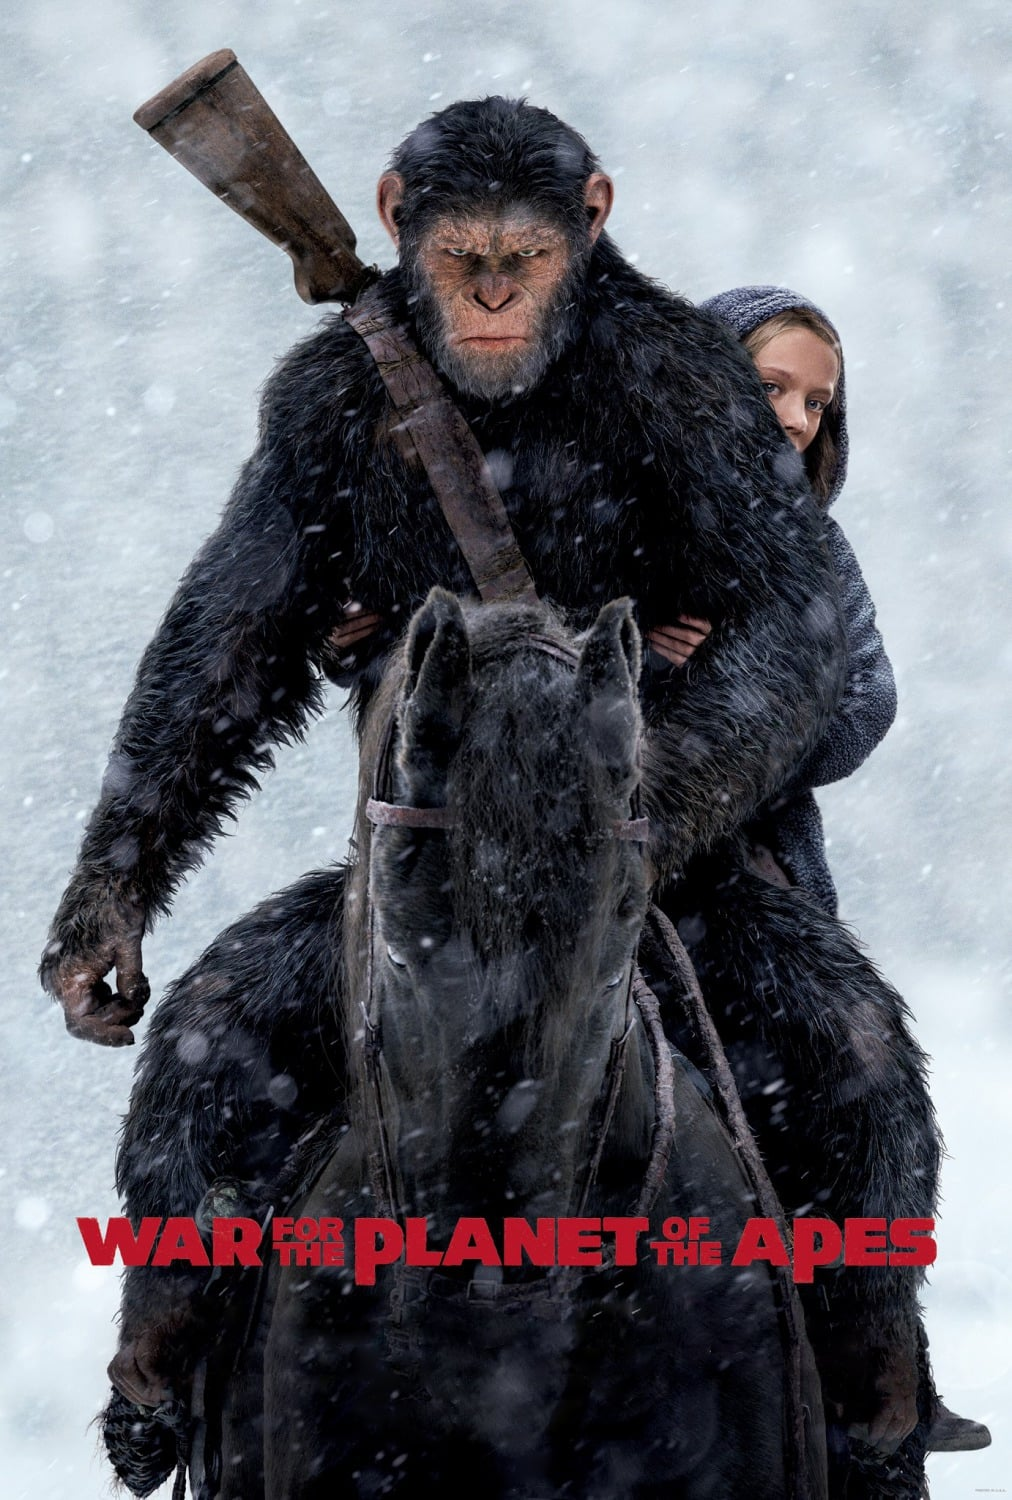 image for War for the Planet of the Apes